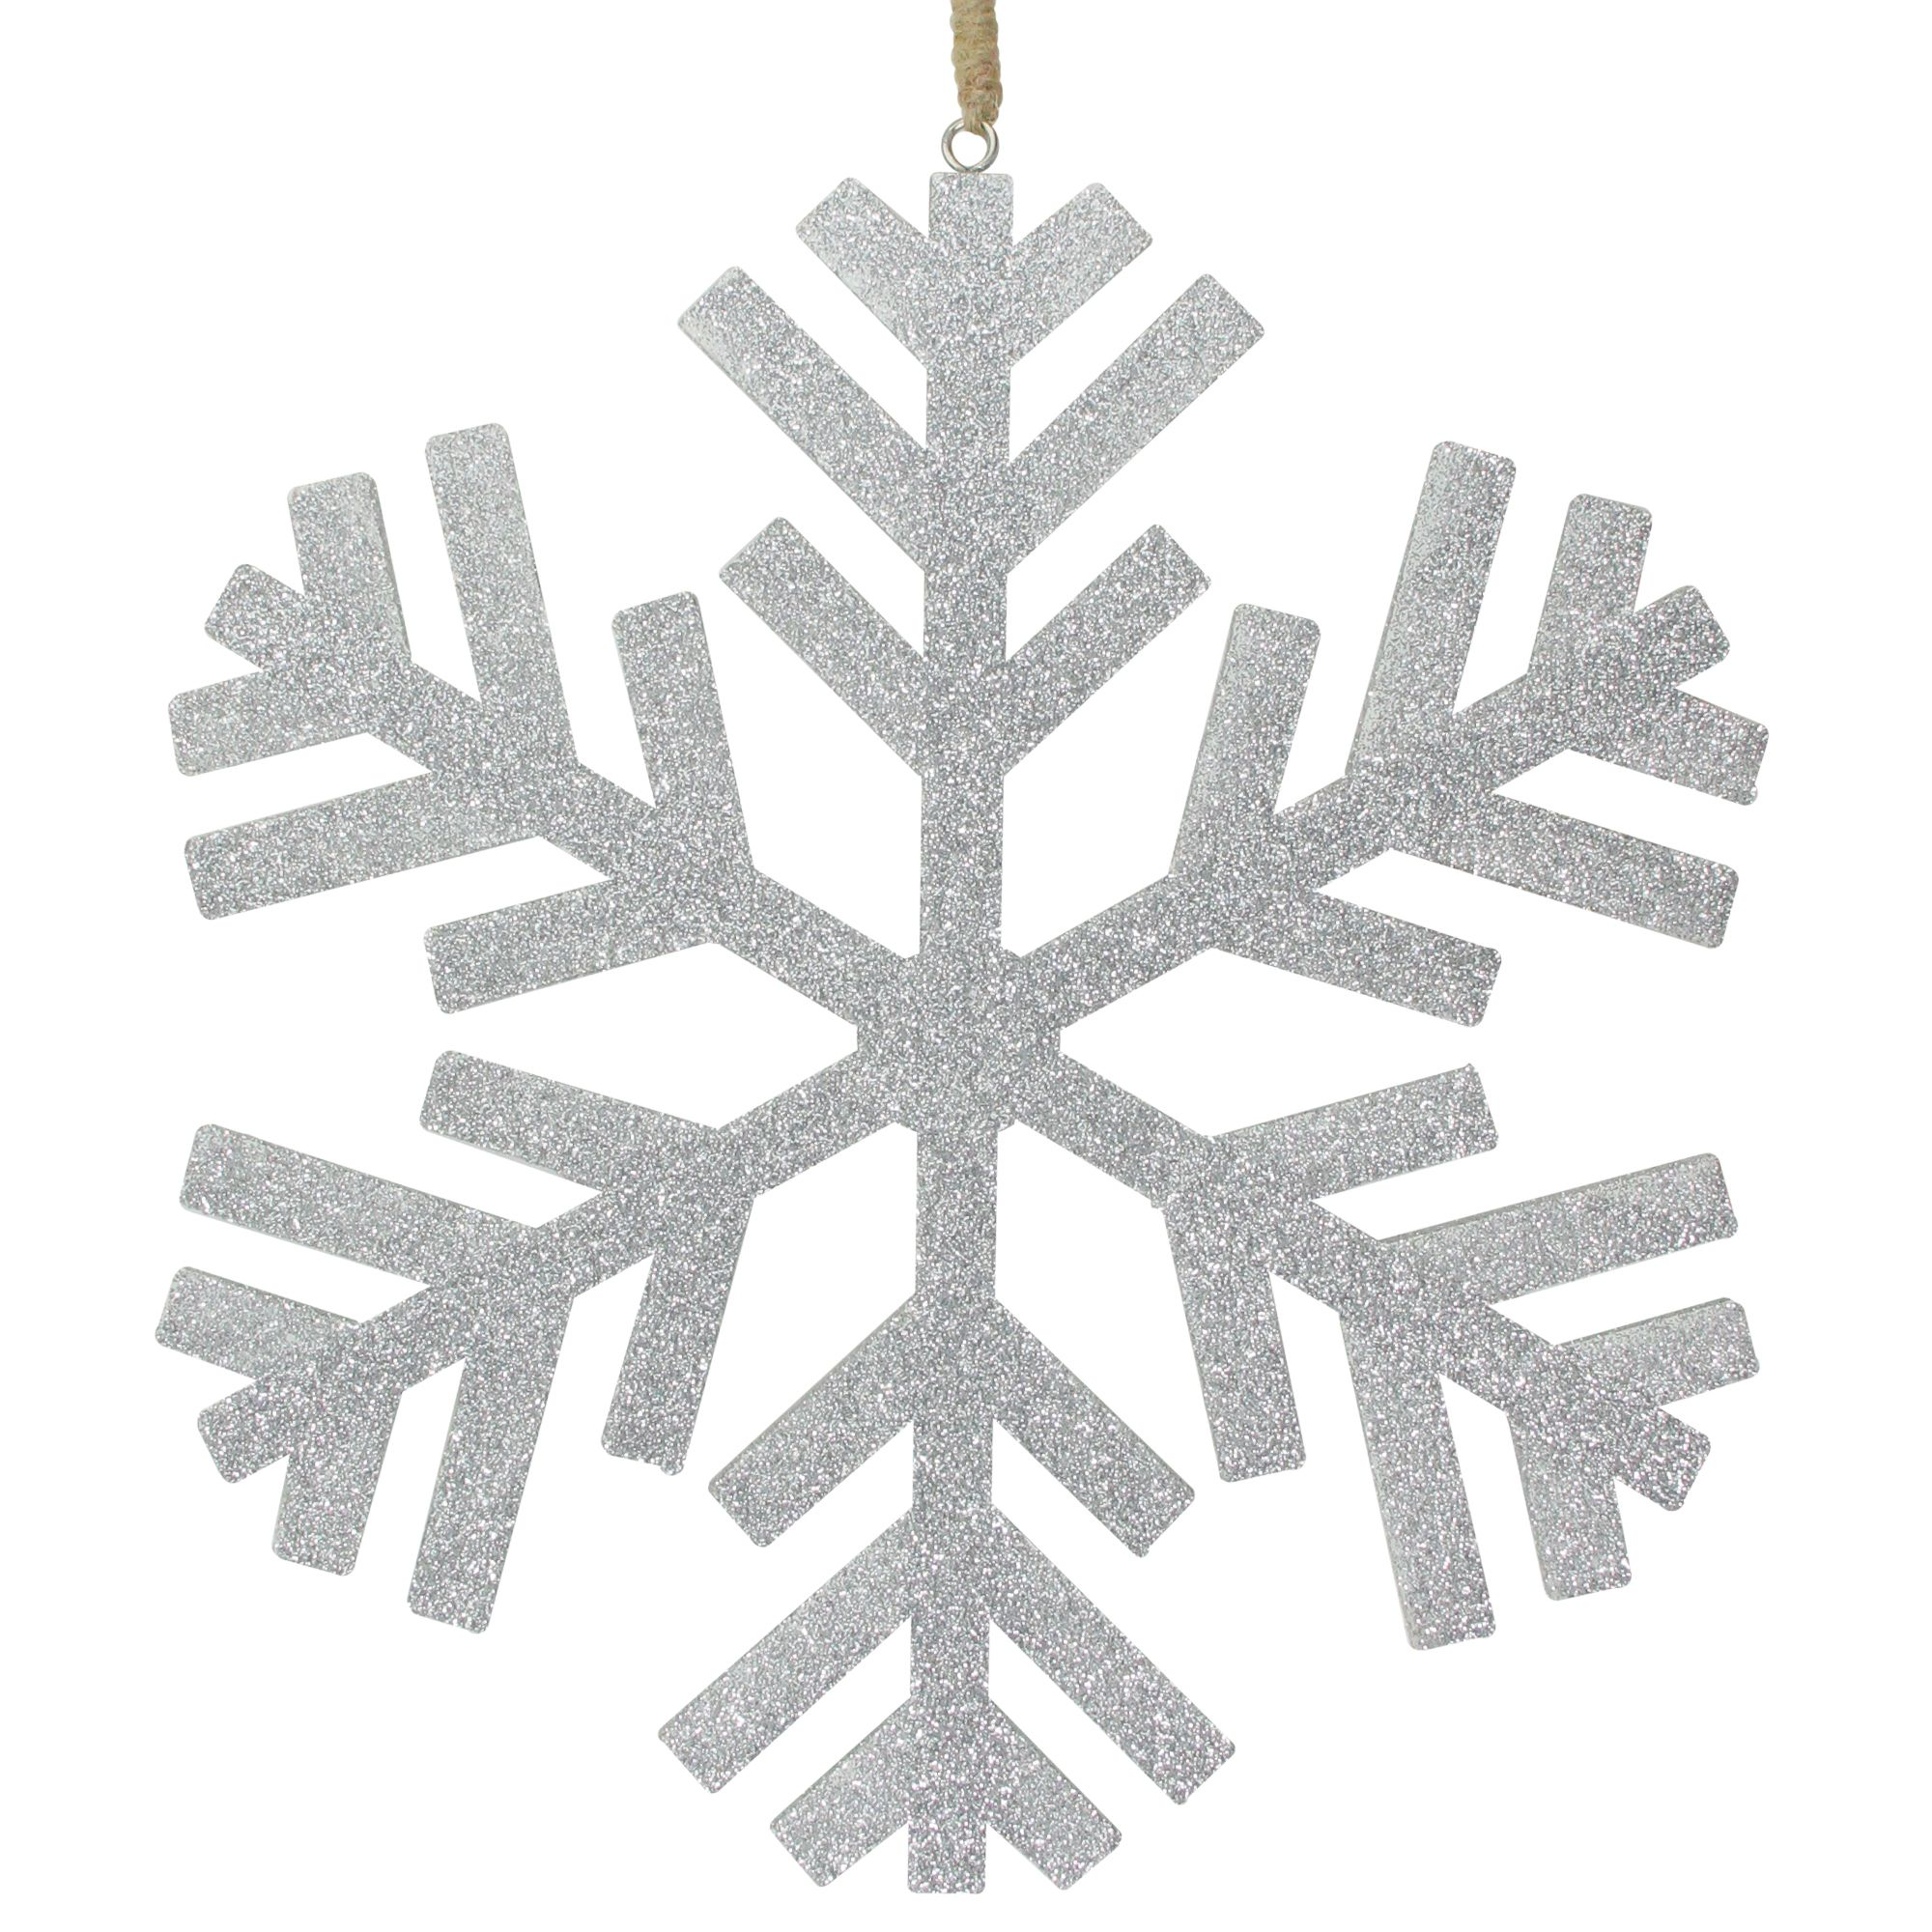 11 75 Silver Glitter Drenched Snowflake Hanging Christmas Ornament Wooden Snowflakes Snowflake Shape Christmas Snowflakes Ornaments